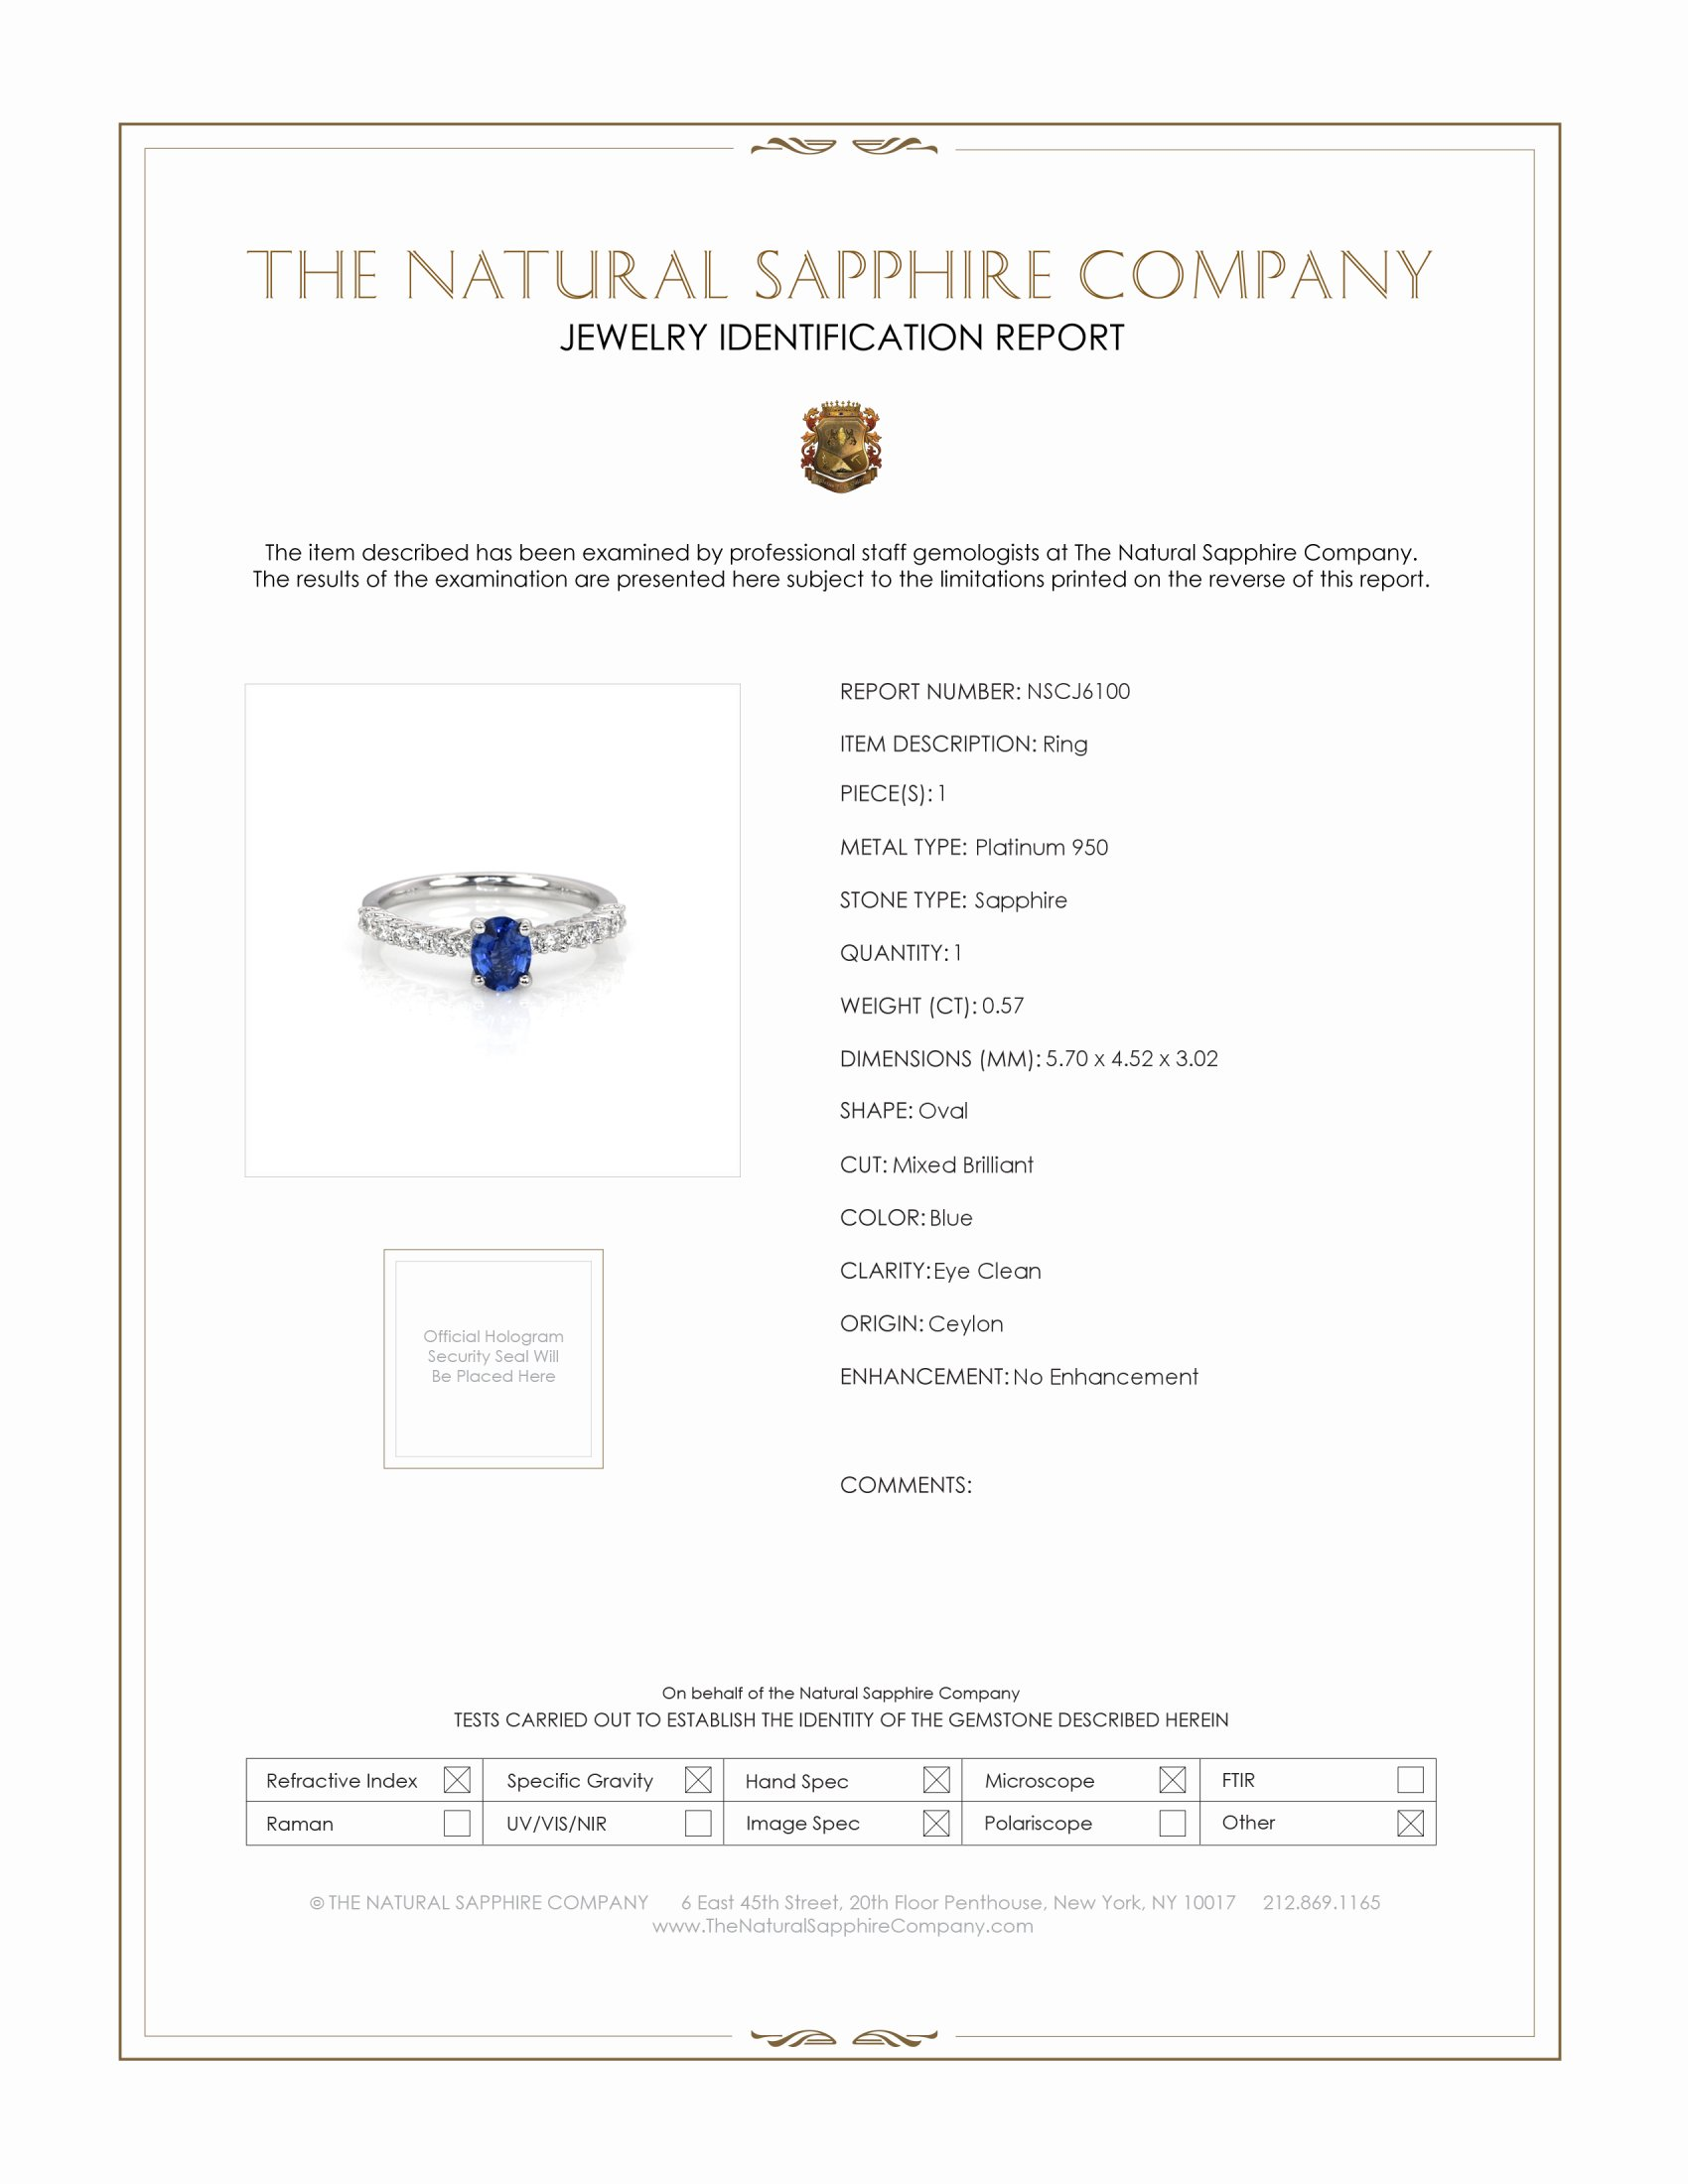 0.57ct Blue Sapphire Ring Certification